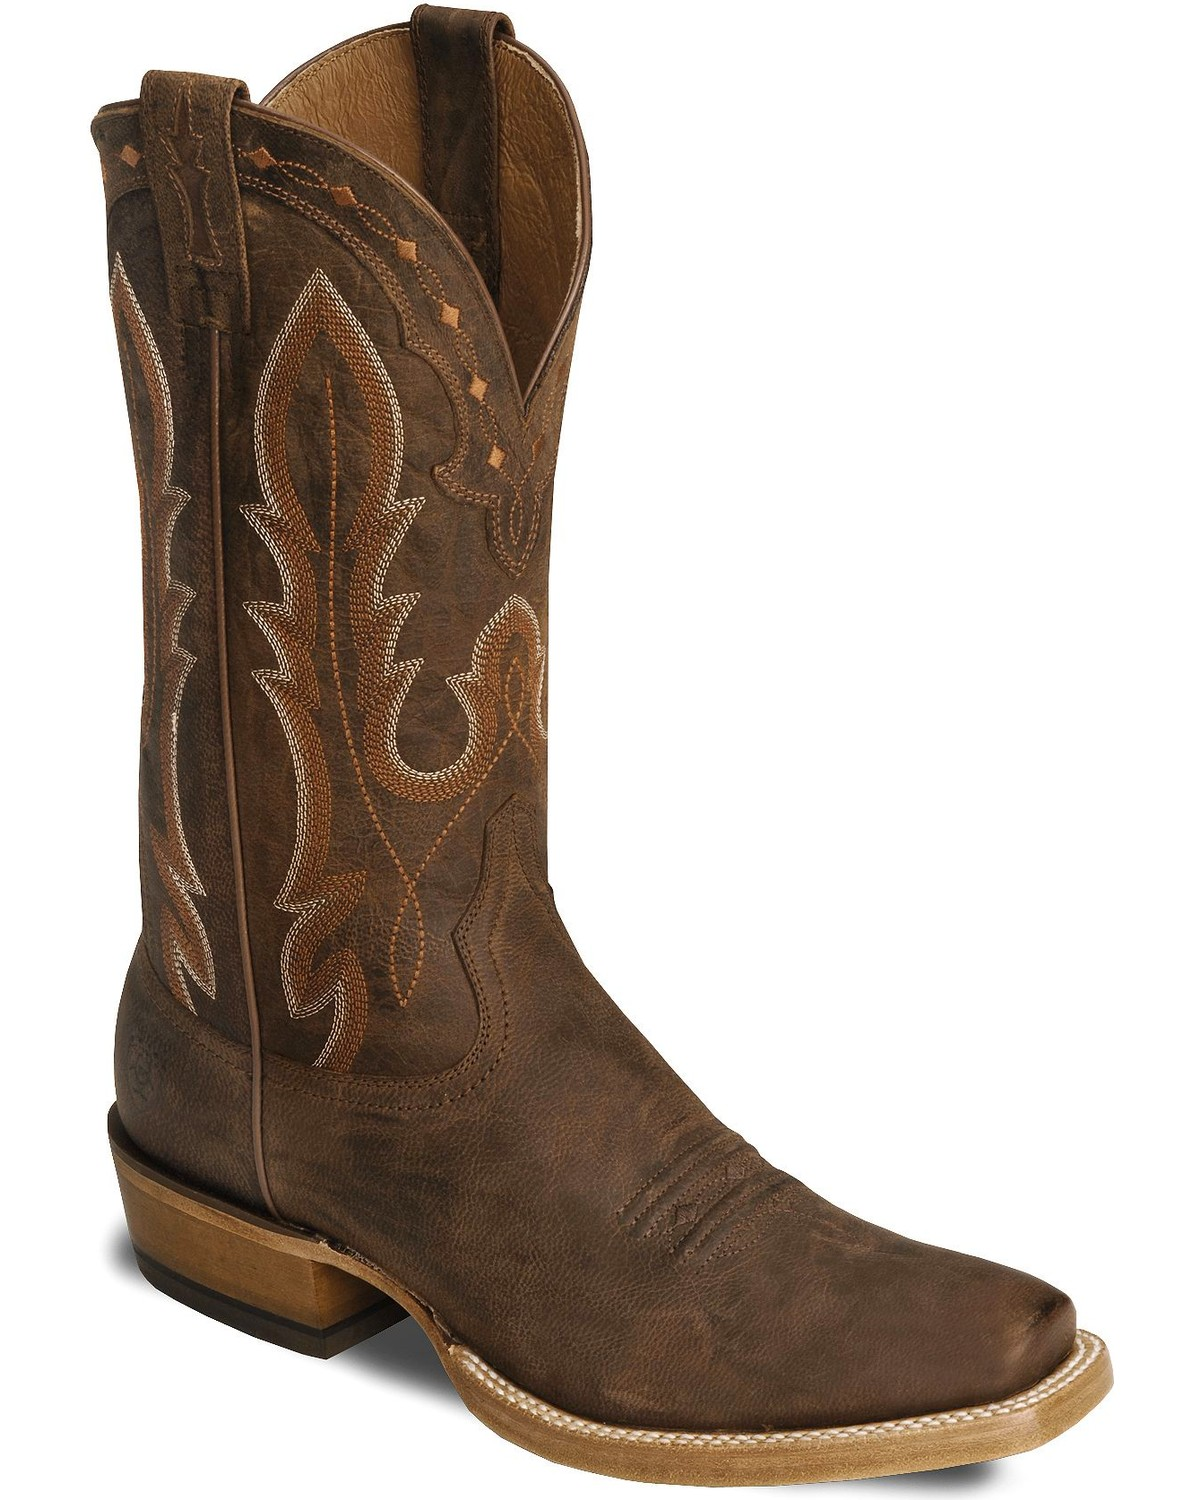 Ariat Brown Hotwire Cowboy Boot - Square Toe - Country Outfitter